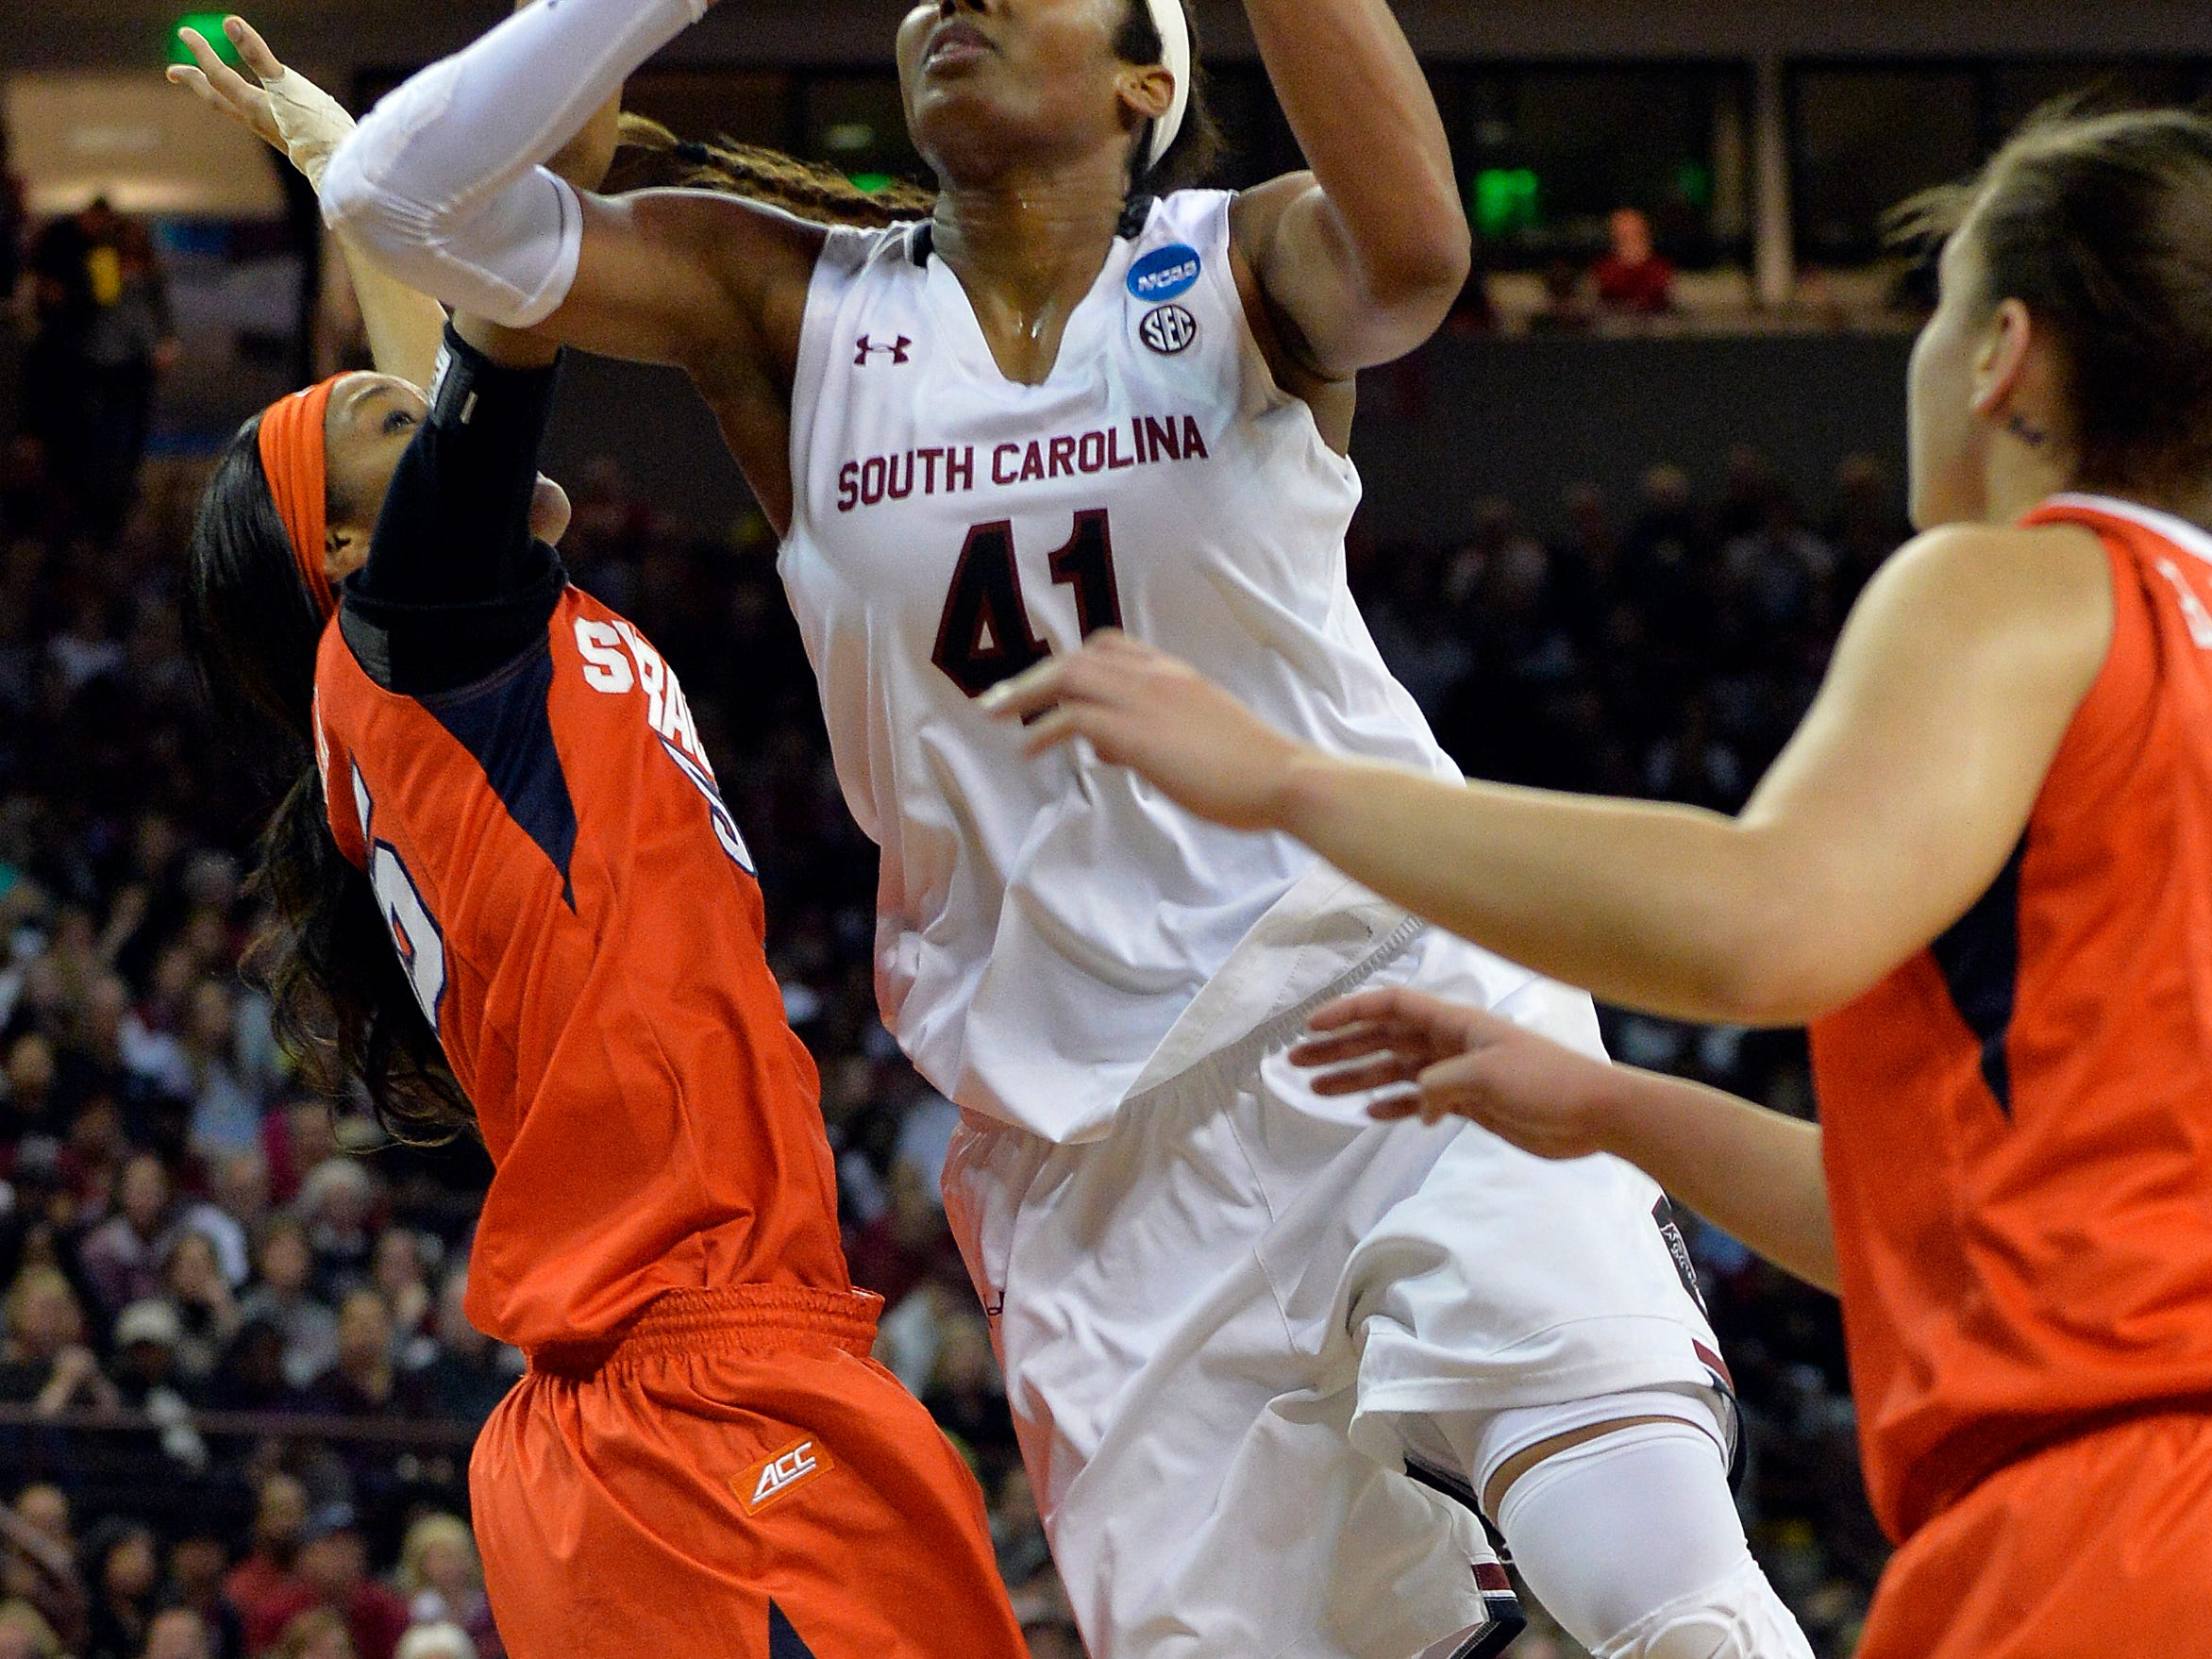 USC center Alaina Coates (41) gets her own rebound and goes back up for the points against Syracuse at Colonial Life Arena in Columbia in the 2nd round of the 2015 NCAA Tournament on Sunday.